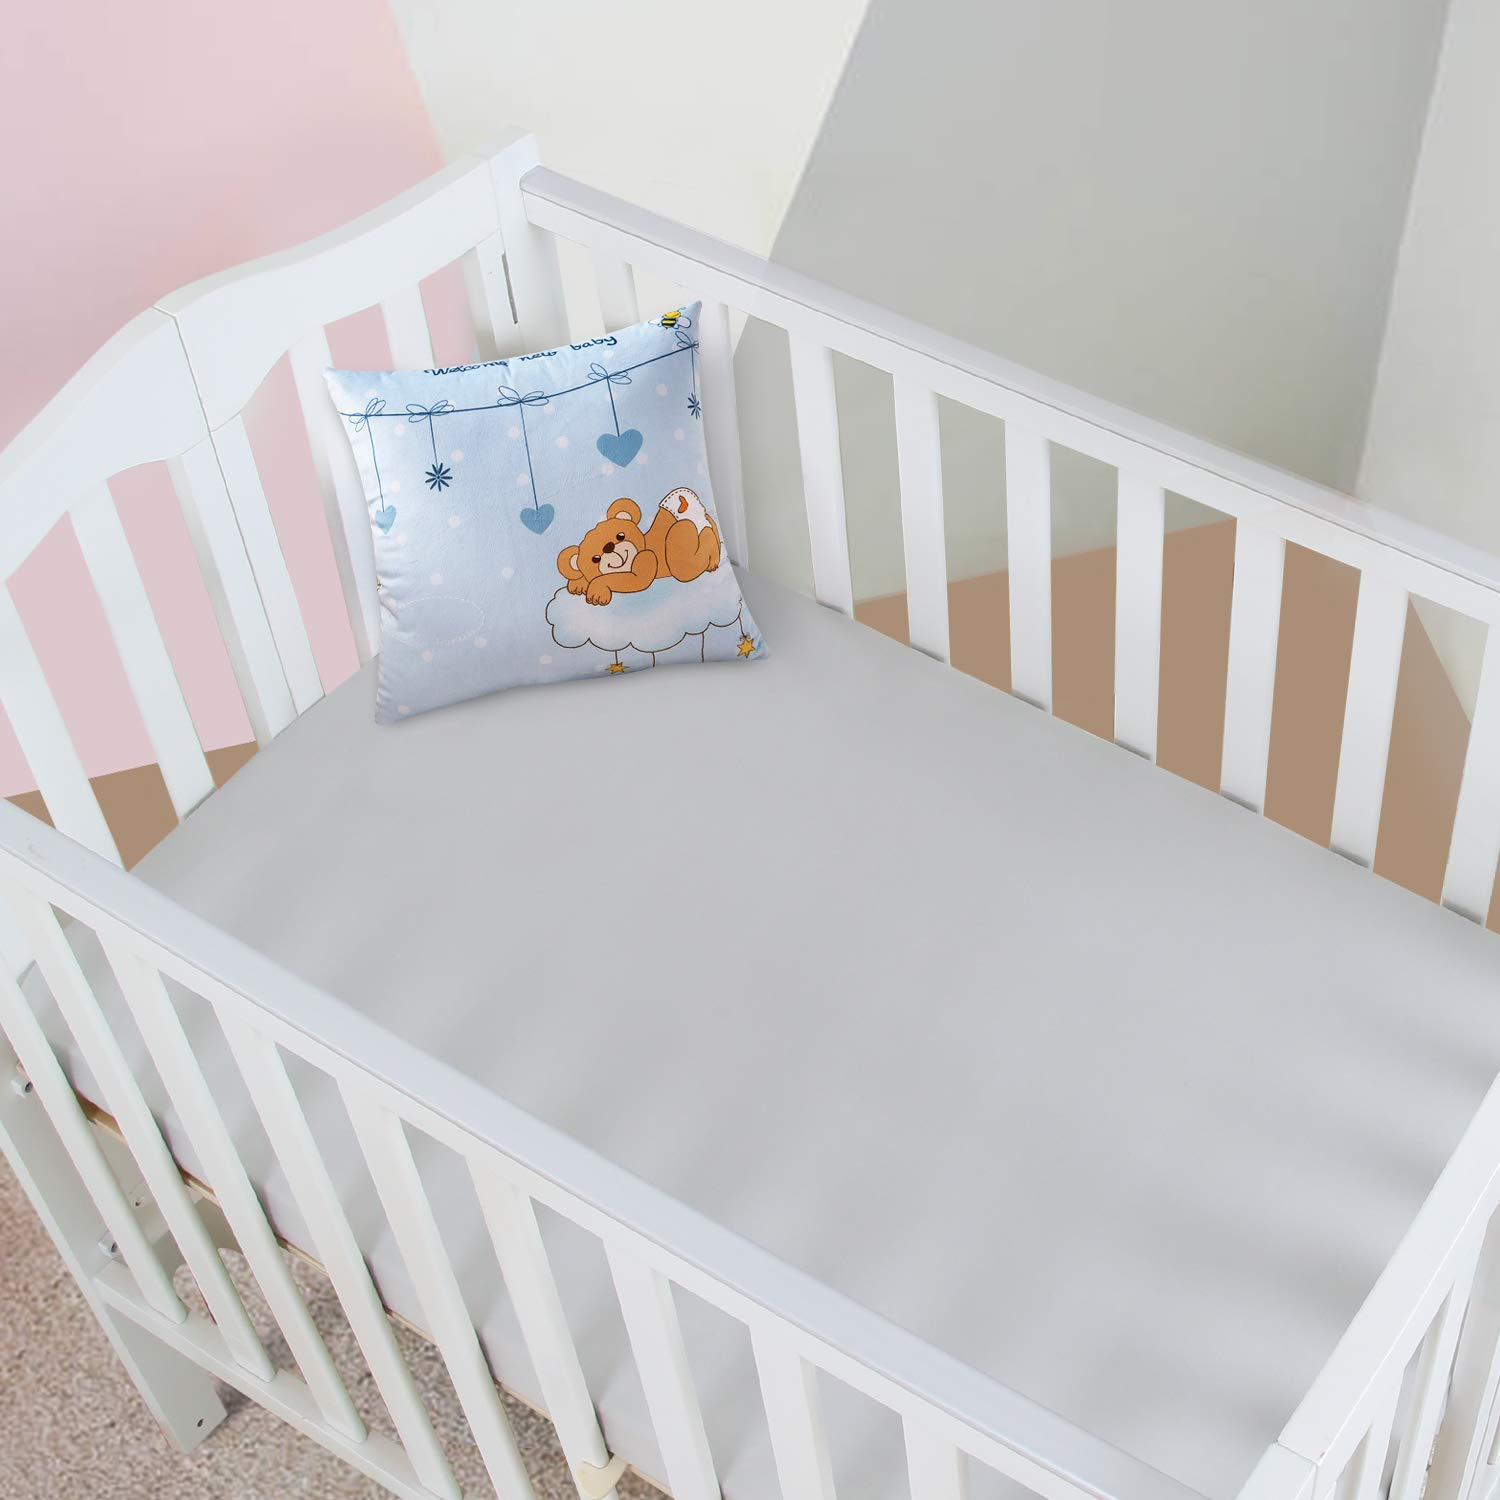 Designthology (U.S.) Super Soft Jersey Knit Crib Sheets (24'' X 38'' X 5'' Light Gray) - Toddler Bed Bedding Set Play N Pack Sheets - Hypoallergenic Breathable Nursery Bedding Sets for Girls & Boys